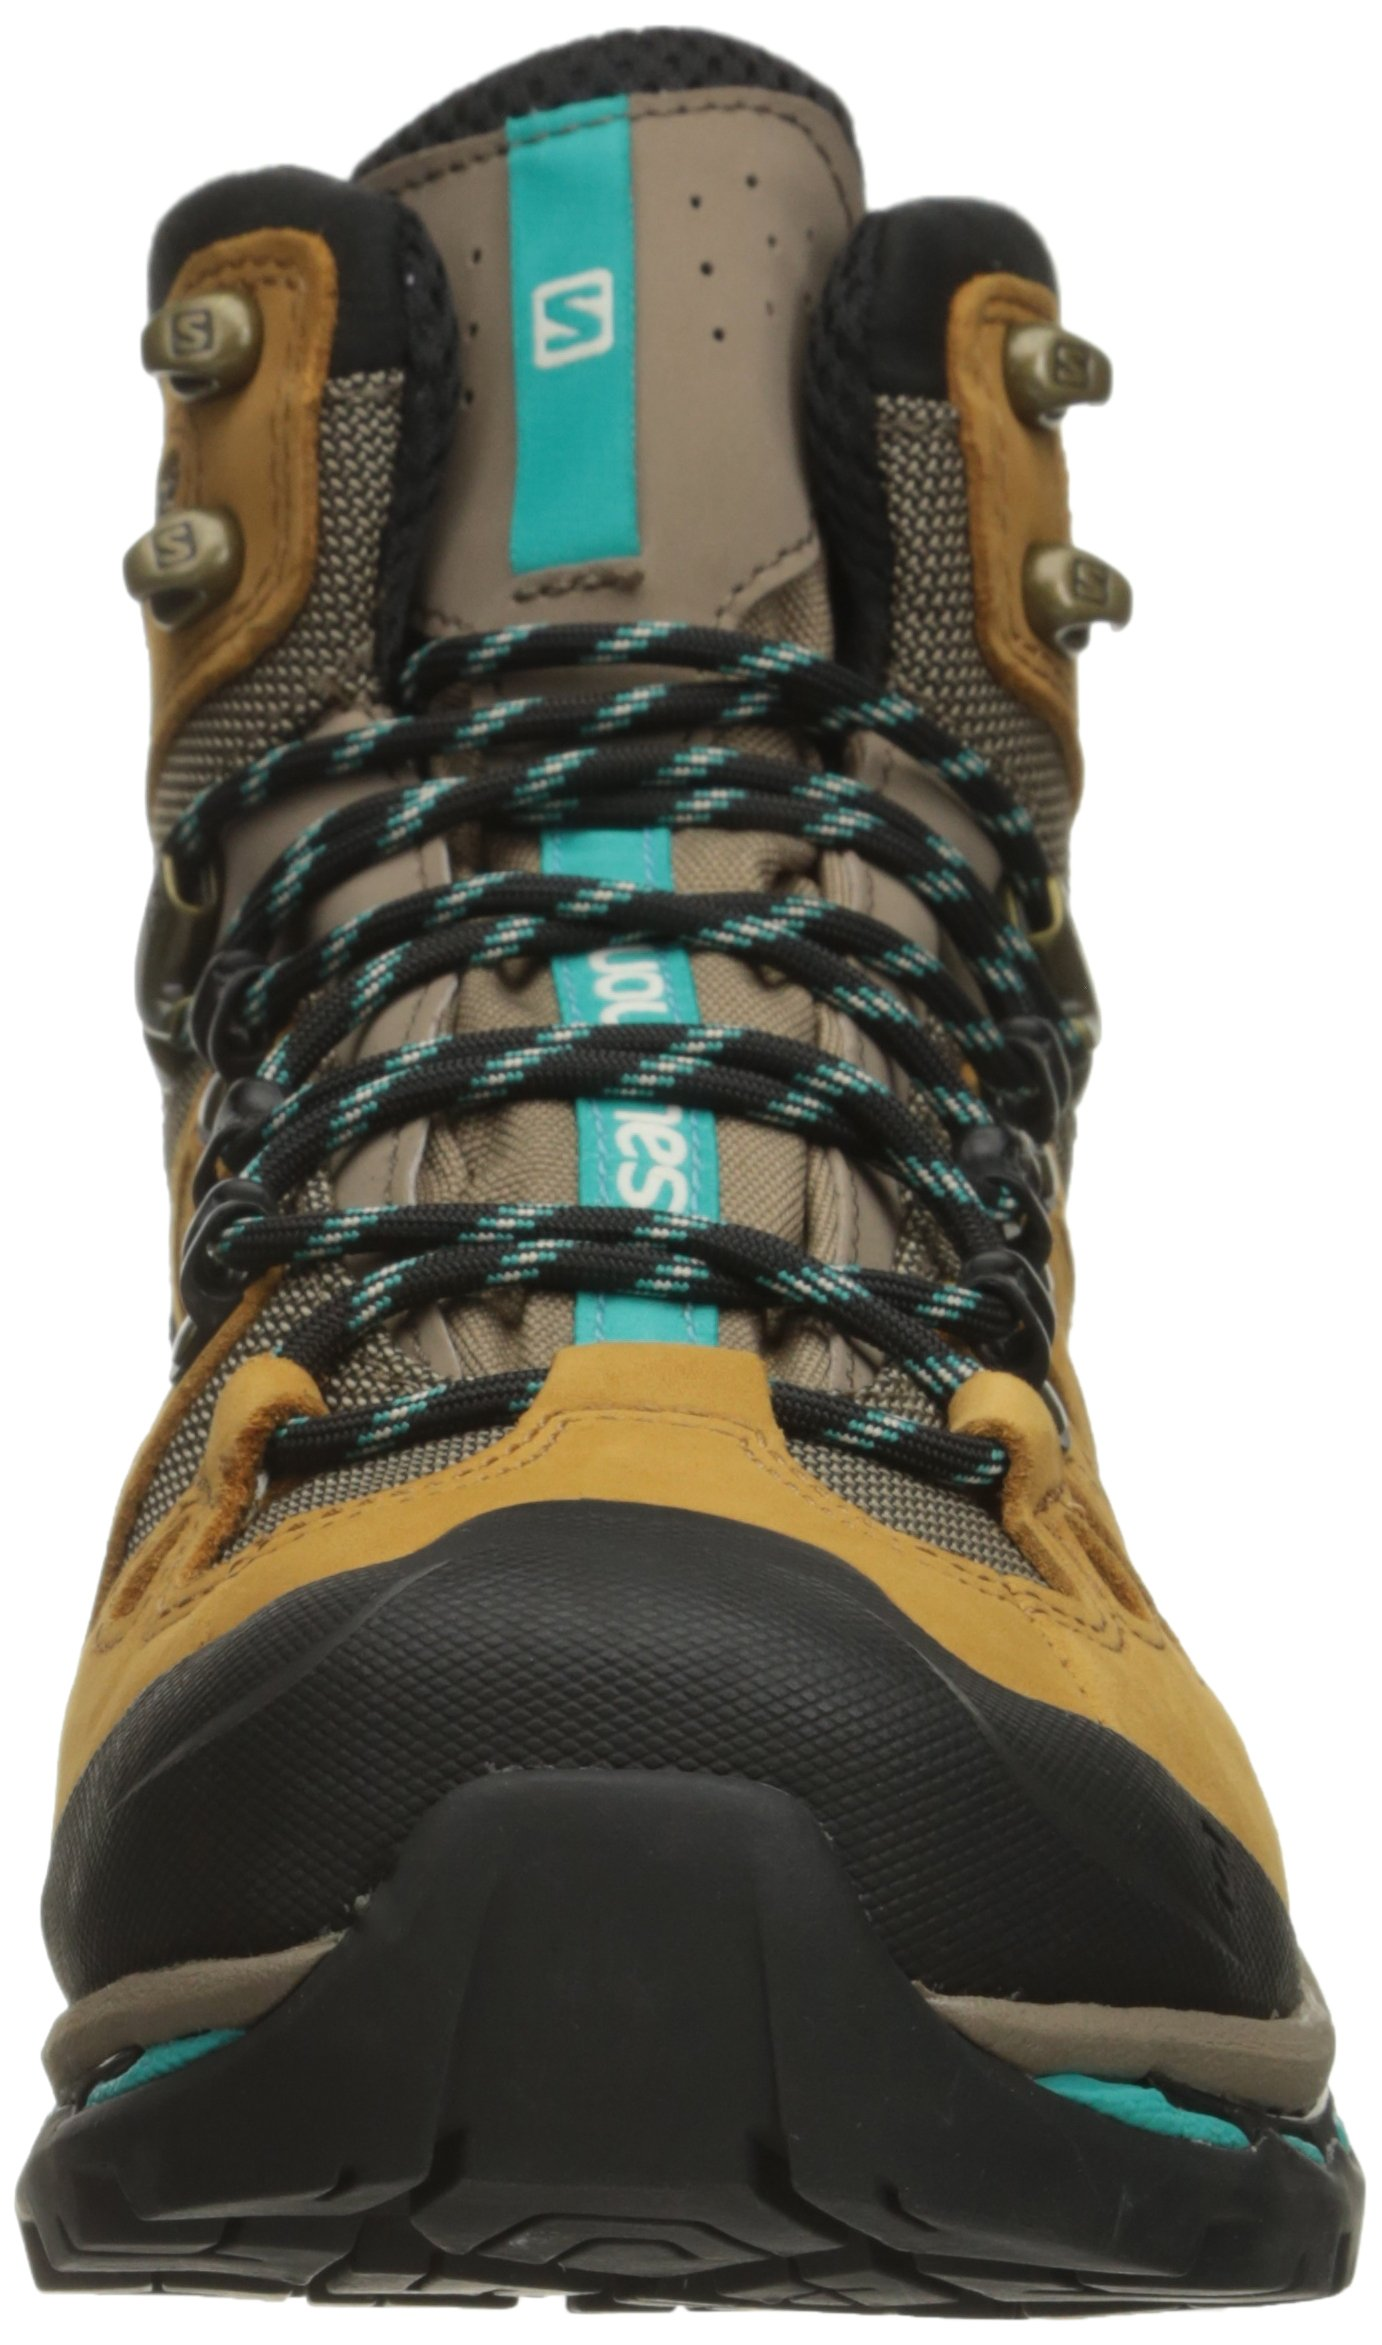 Salomon Women's Quest 4d 2 Gtx W Backpacking Boot, Shrew/Camel Gold Leather/Teal Blue Fabric, 8.5 M US by Salomon (Image #4)